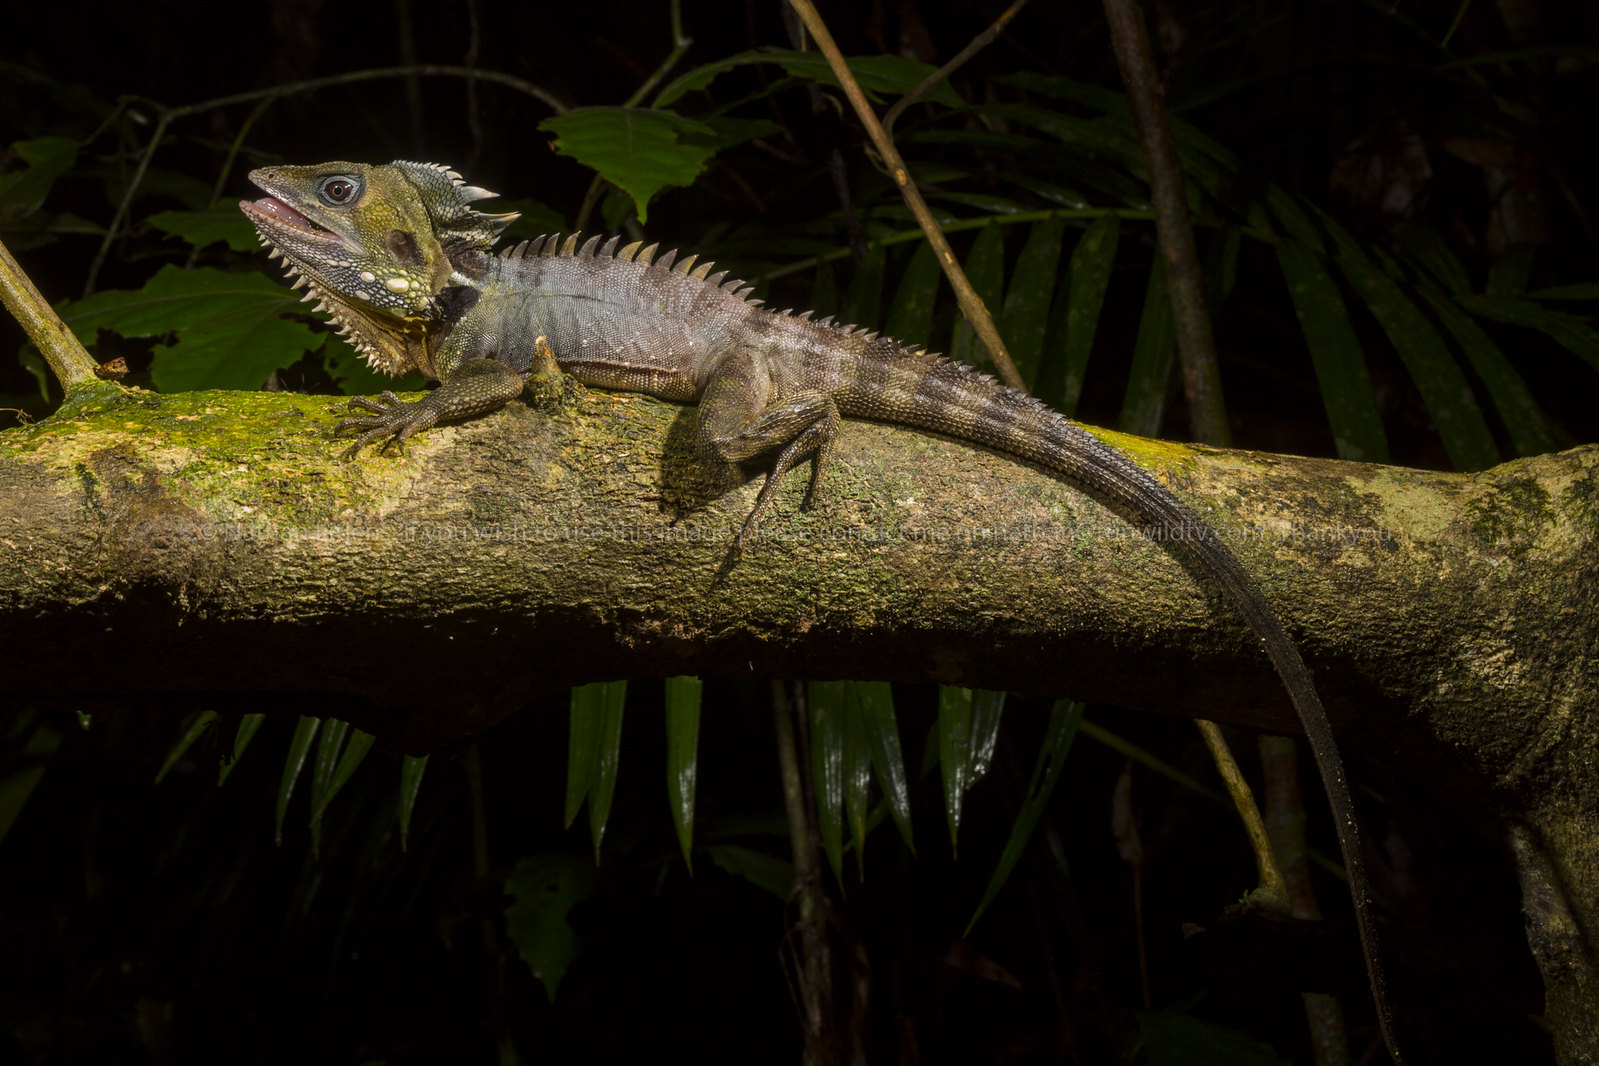 Male Boyd's forest dragon (Hypsilurus boydii)